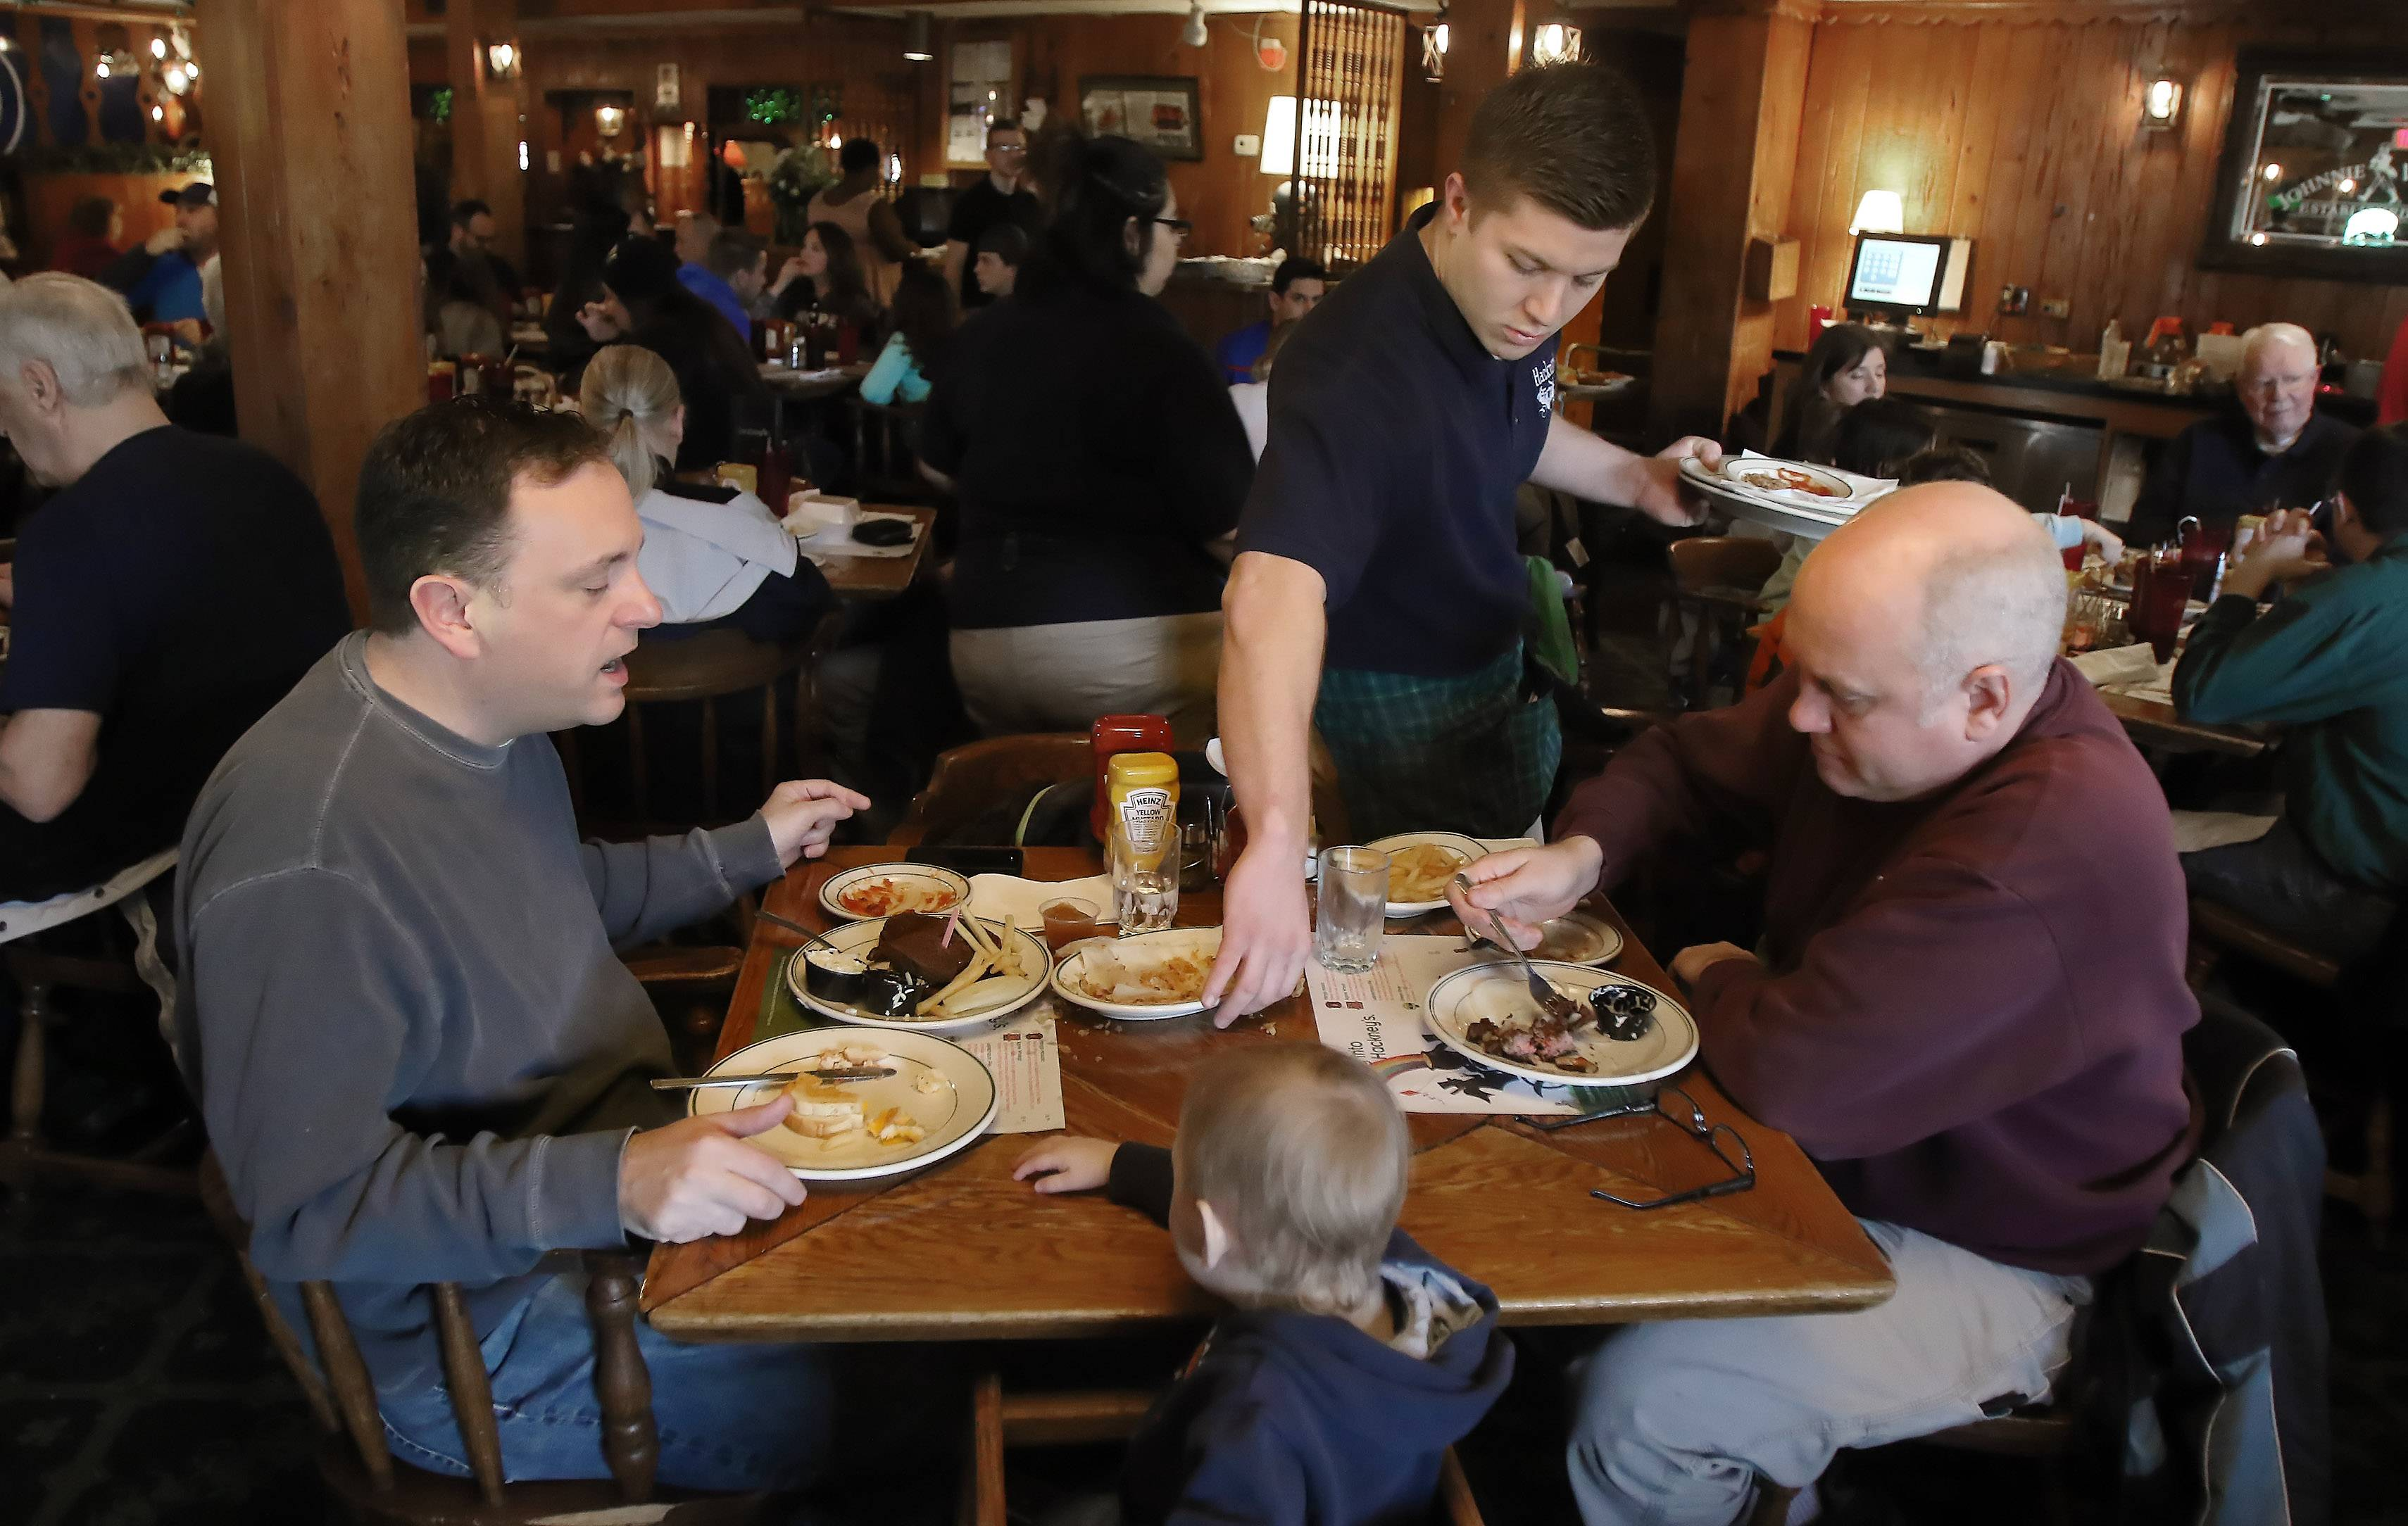 Waiter Patrick Miller waits on John Molitor of Port Barrington, left, his son, Johnny, and Laris Vigants of Fox River Grove on the last day of business for Hackney's in Lake Zurich on Sunday. The restaurant has been open for 48 years.